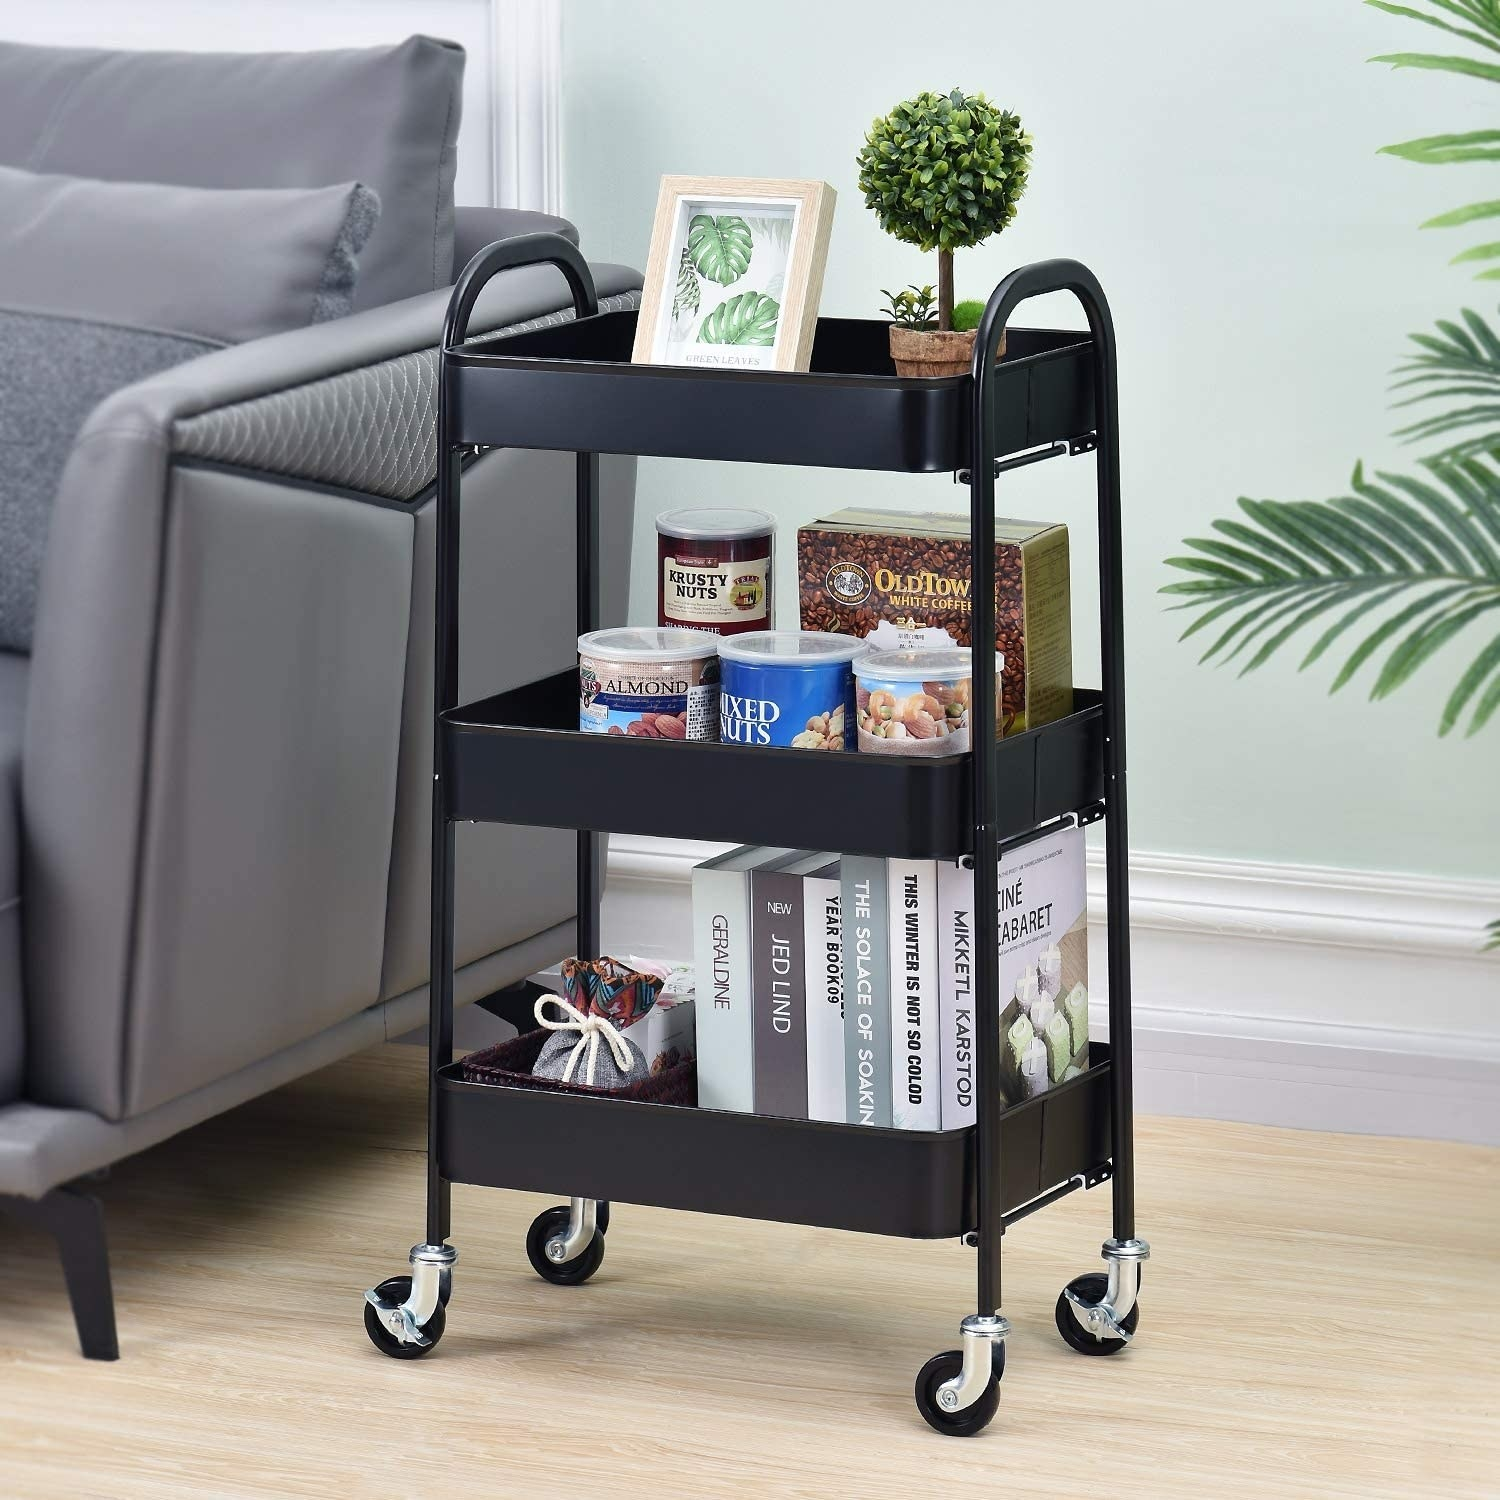 A utility cart with books, snacks, and decor accessories on it